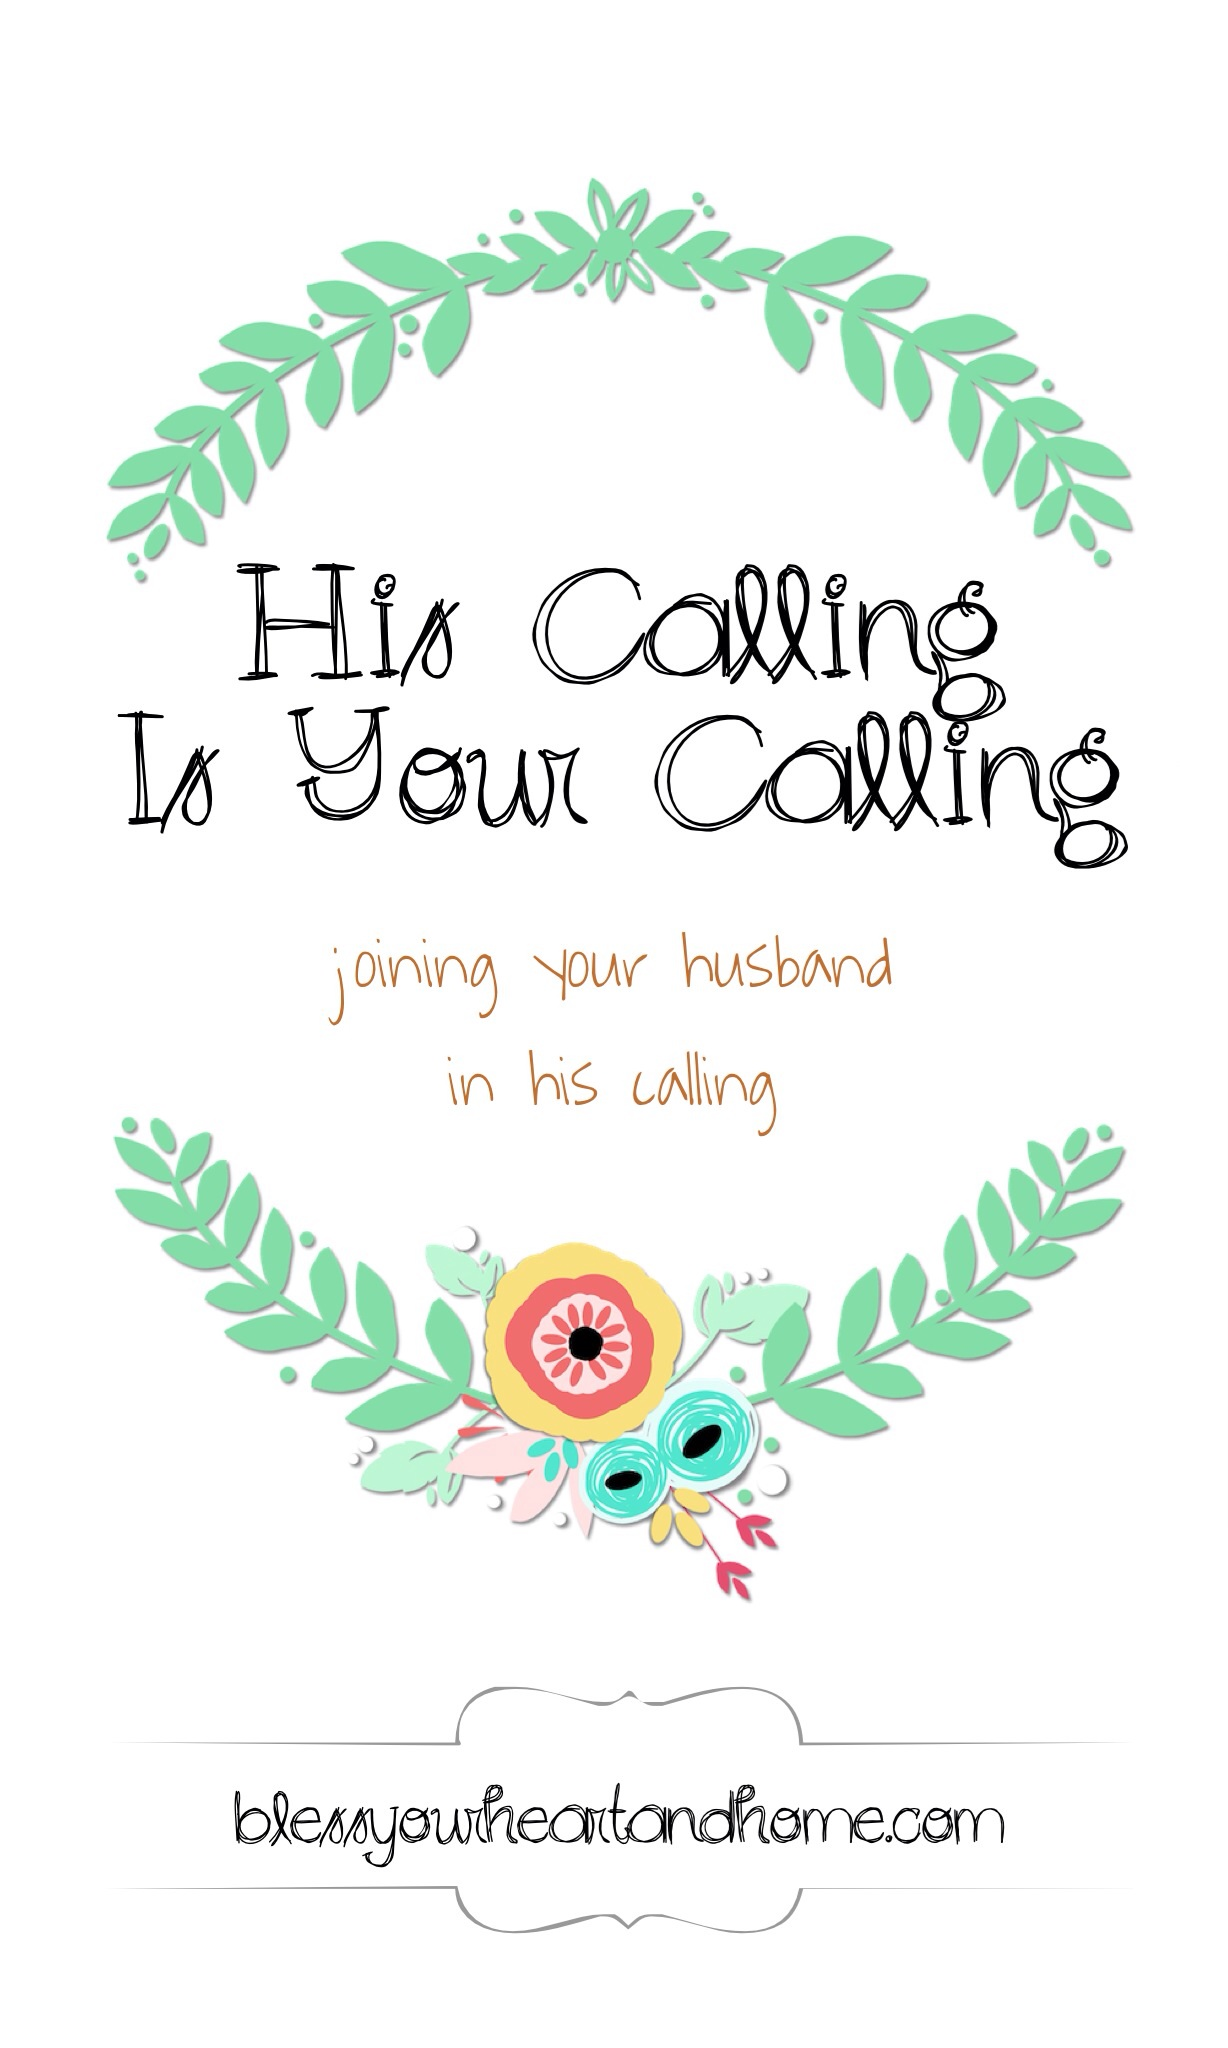 His Calling Is Your Calling